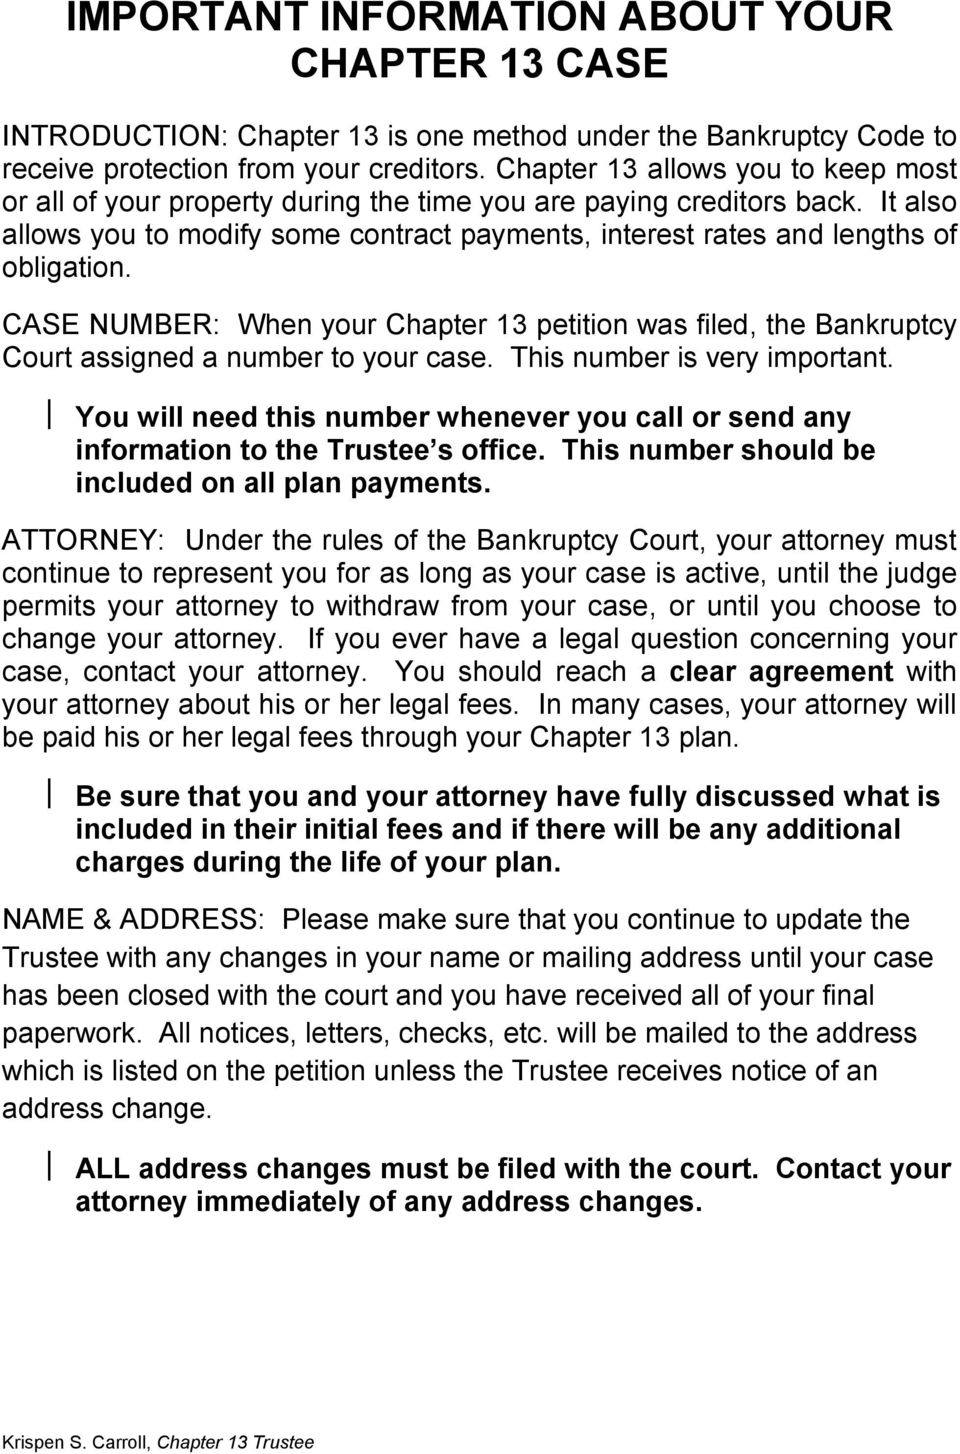 CASE NUMBER: When your Chapter 13 petition was filed, the Bankruptcy Court assigned a number to your case. This number is very important.